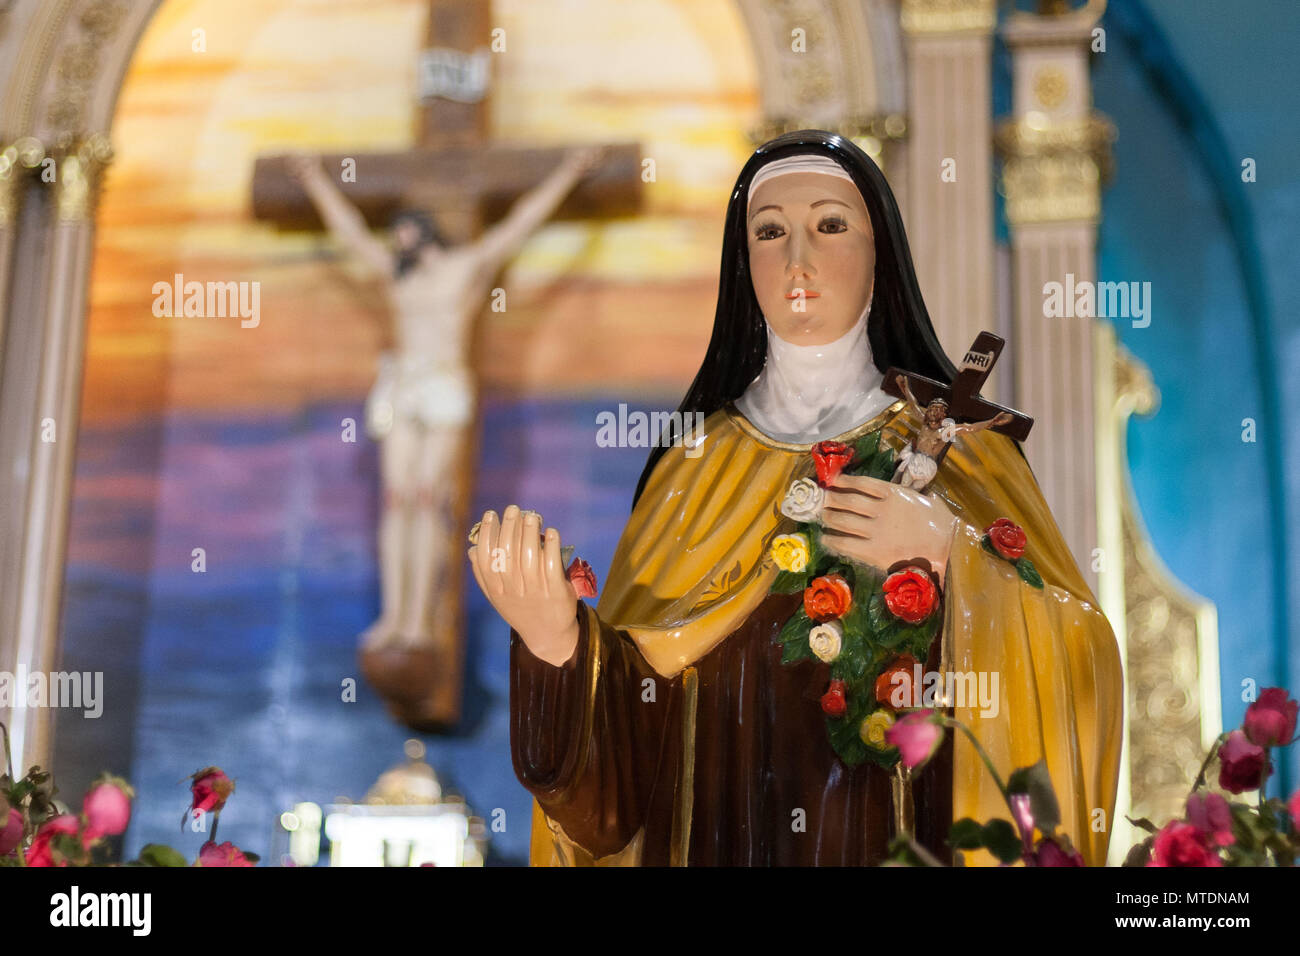 A statue of Saint Therese seen display next to the Shrine of Saint Therese of the Child Jesus in New Port City in Pasay, Metro Manila. The reliquary containing the bones of Saint Therese has been on a nation wide tour and is on its last few days in Manila before heading back to France. - Stock Image